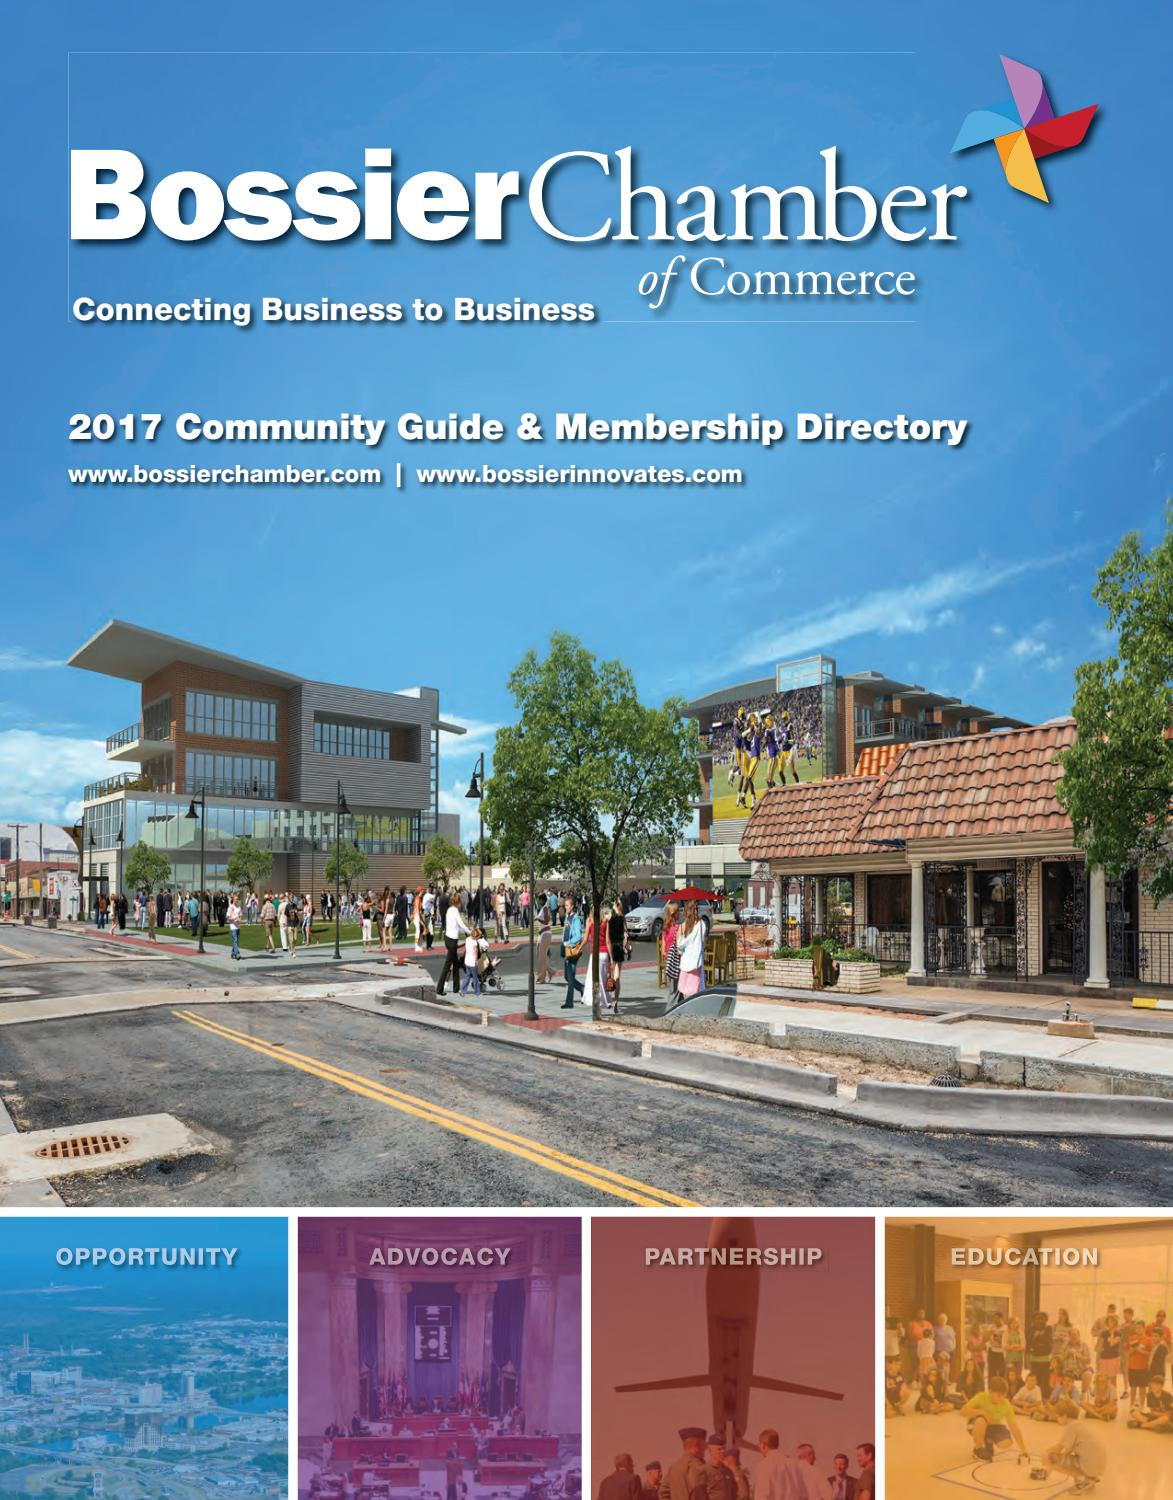 Bossier La Chamber Profile 2017 By Town Square Publications Llc Issuu Yong Ma Mc 3480 Rice Cooker Black Tinum